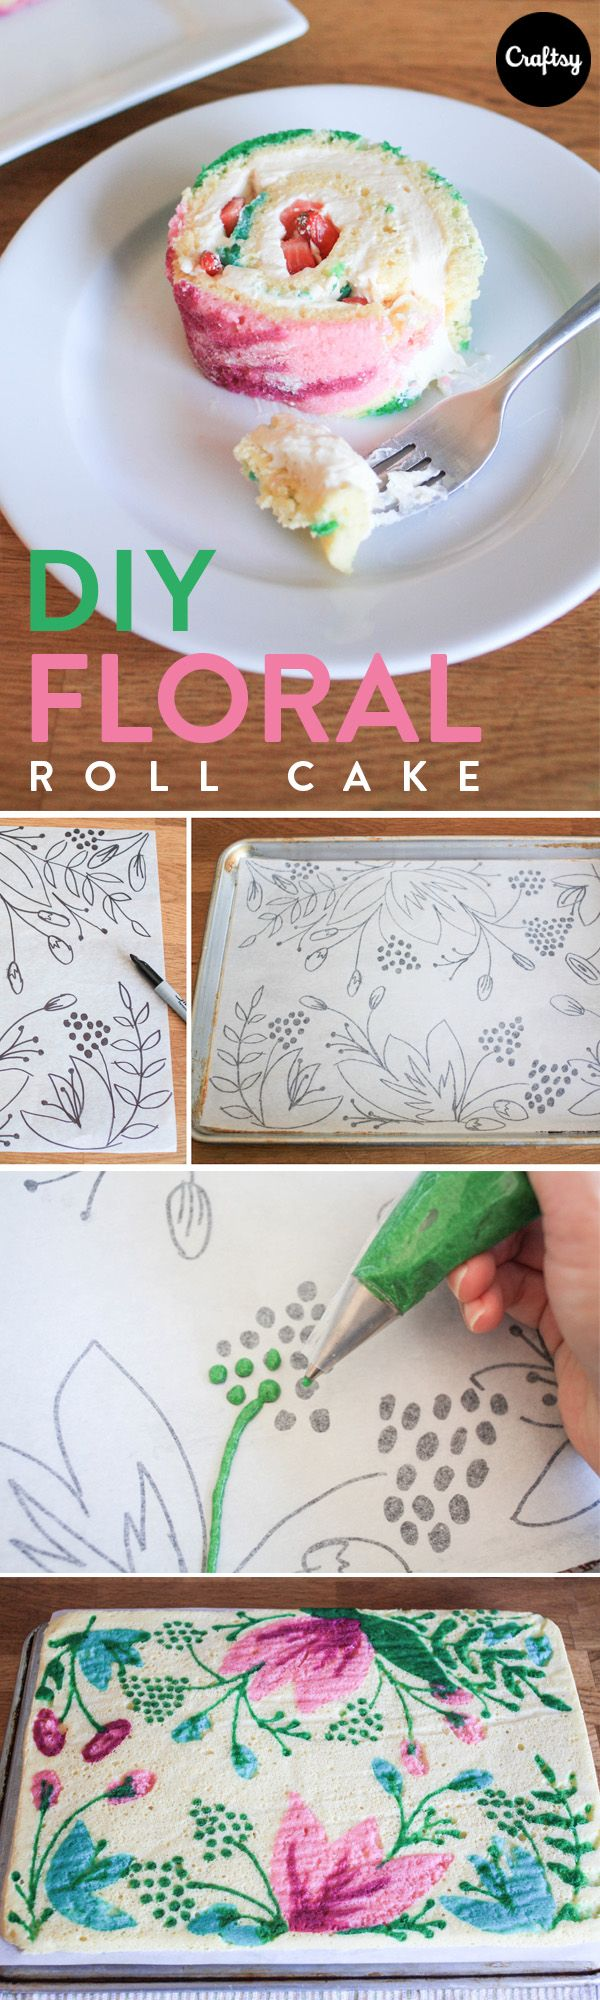 Florals don't have to come in the shape of frosting. This gorgeous, patterned roll cake is easy to make and can be designed before baking!